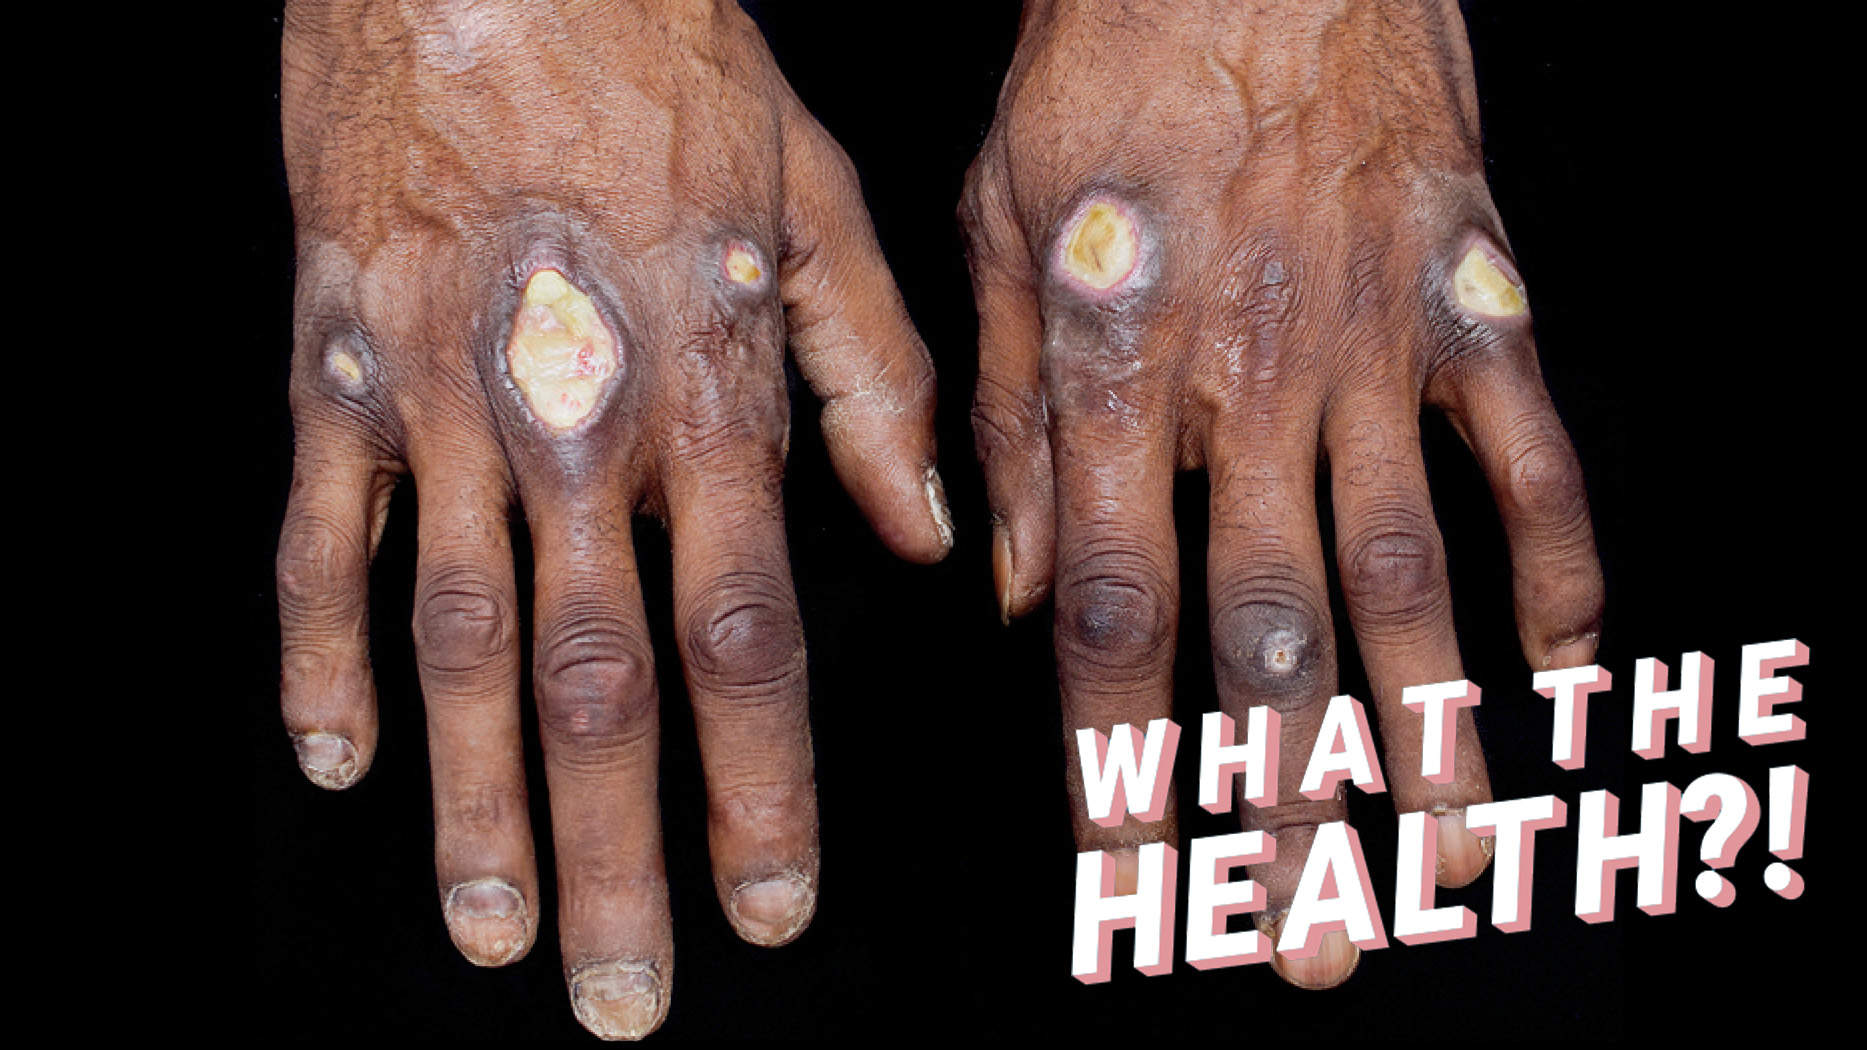 The Large, Painful Sores on This Man's Hands Were Caused By An Extremely Rare Inflammatory Disease